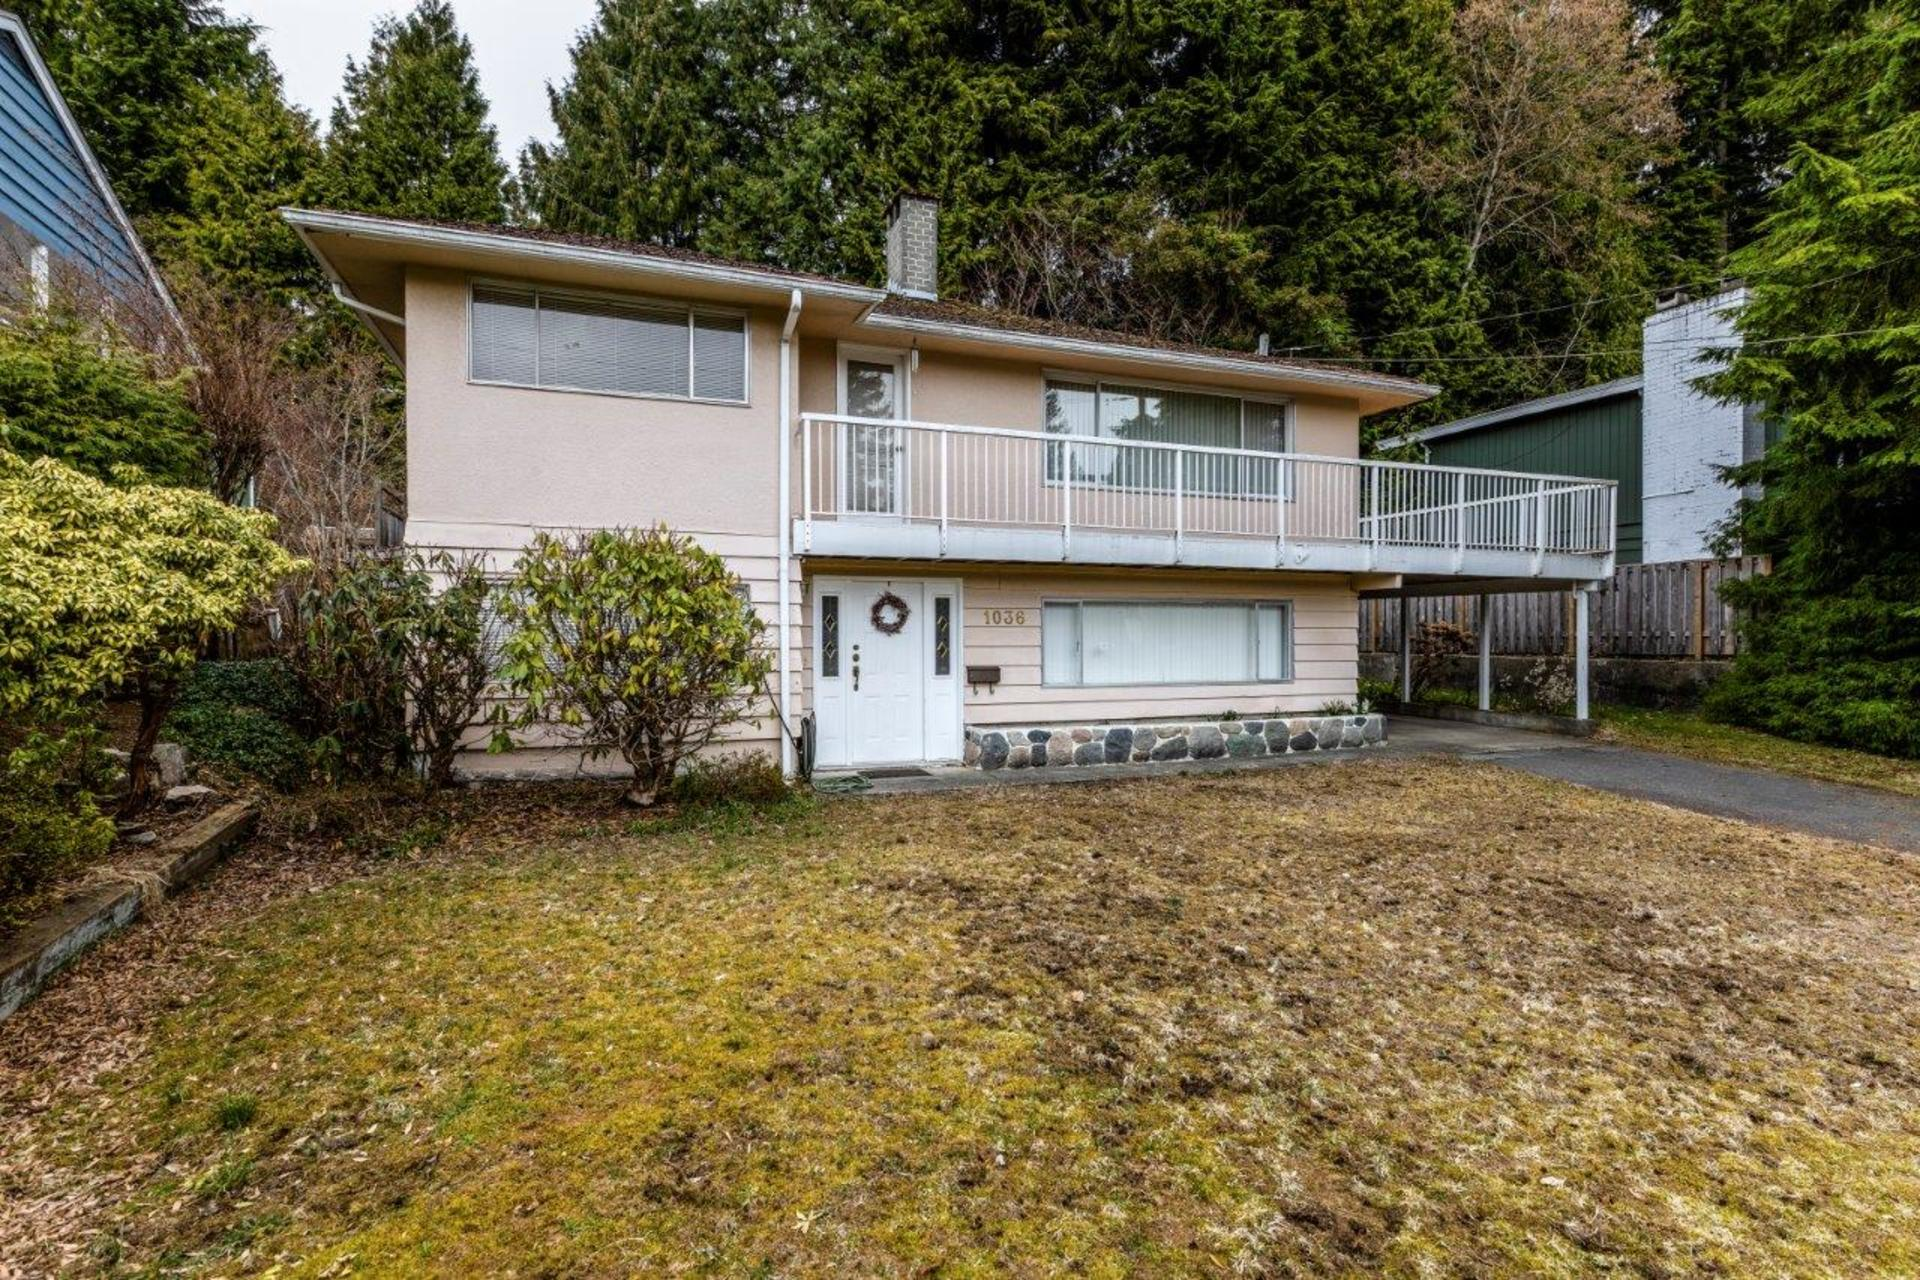 front at 1036 Clements, Canyon Heights NV, North Vancouver